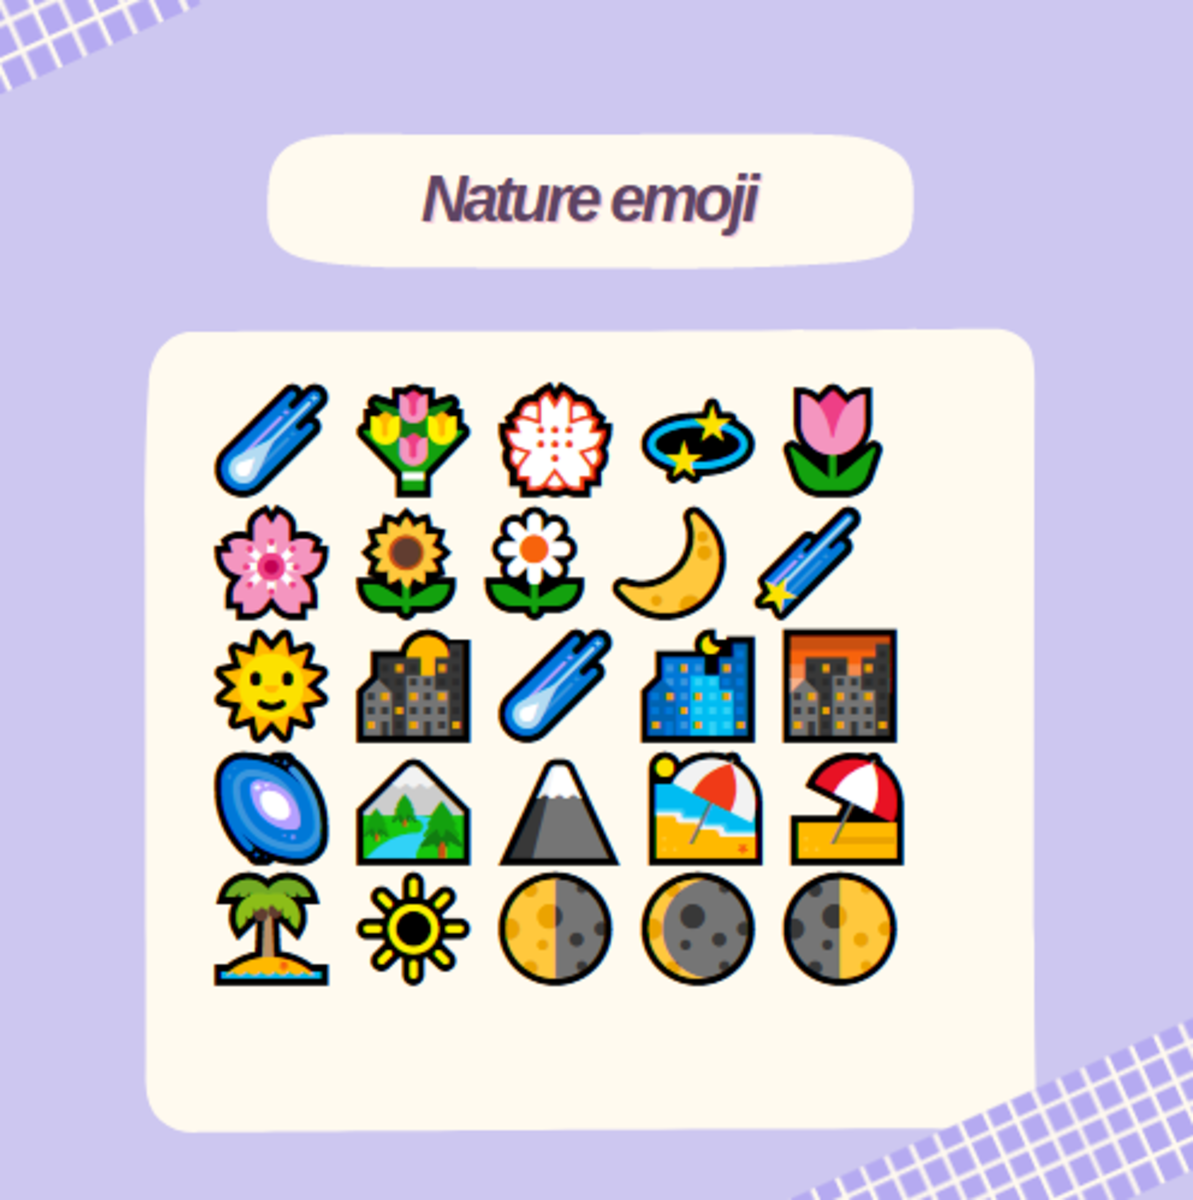 Here are some cool nature emoji you could incorporate in your status!